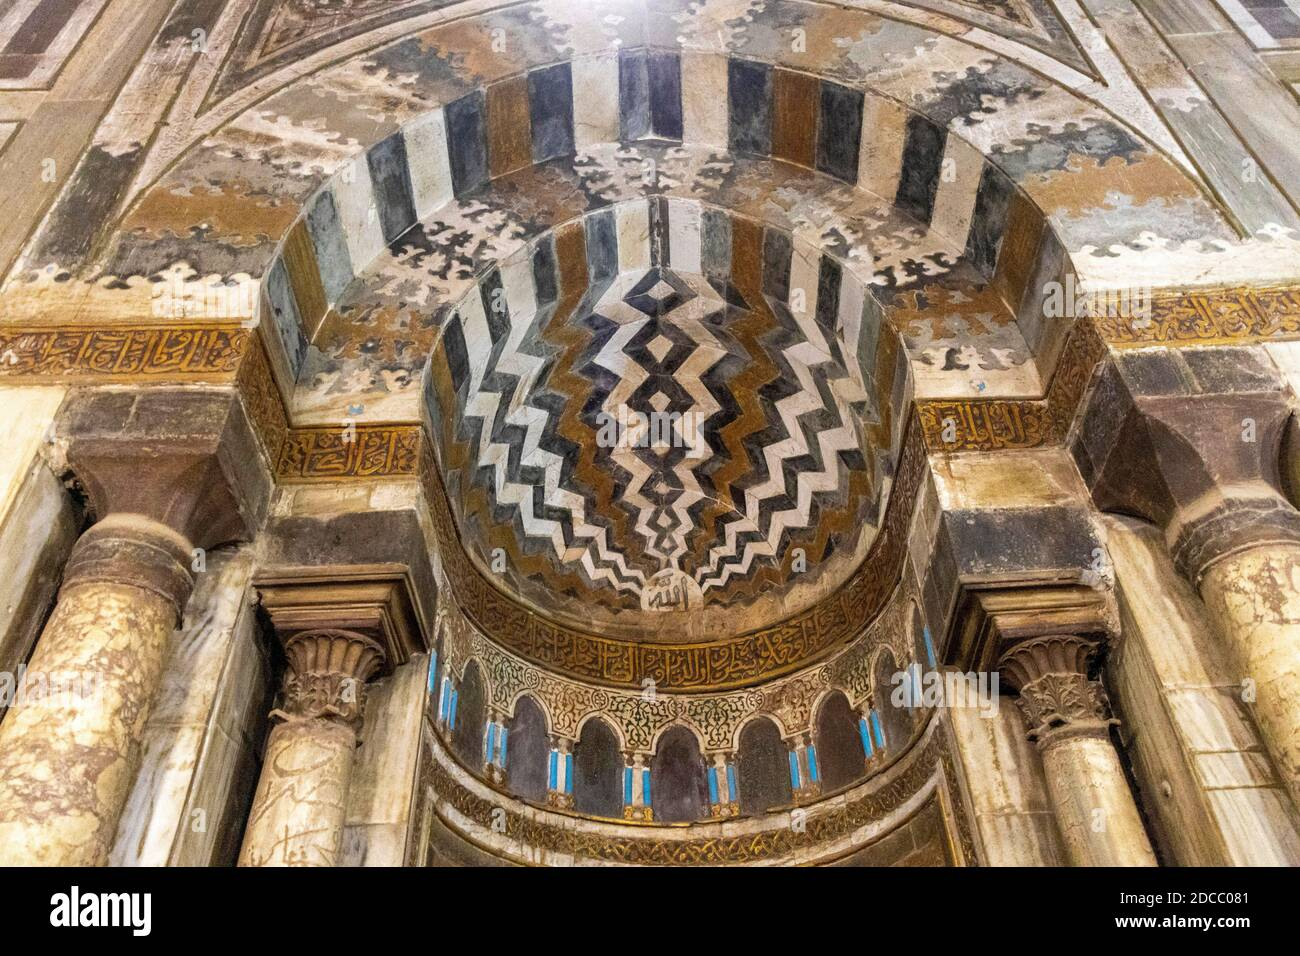 Complex of Sultan Hasan, Cairo, Egypt, interior of mausoleum, detail of inlaid mihrab Stock Photo